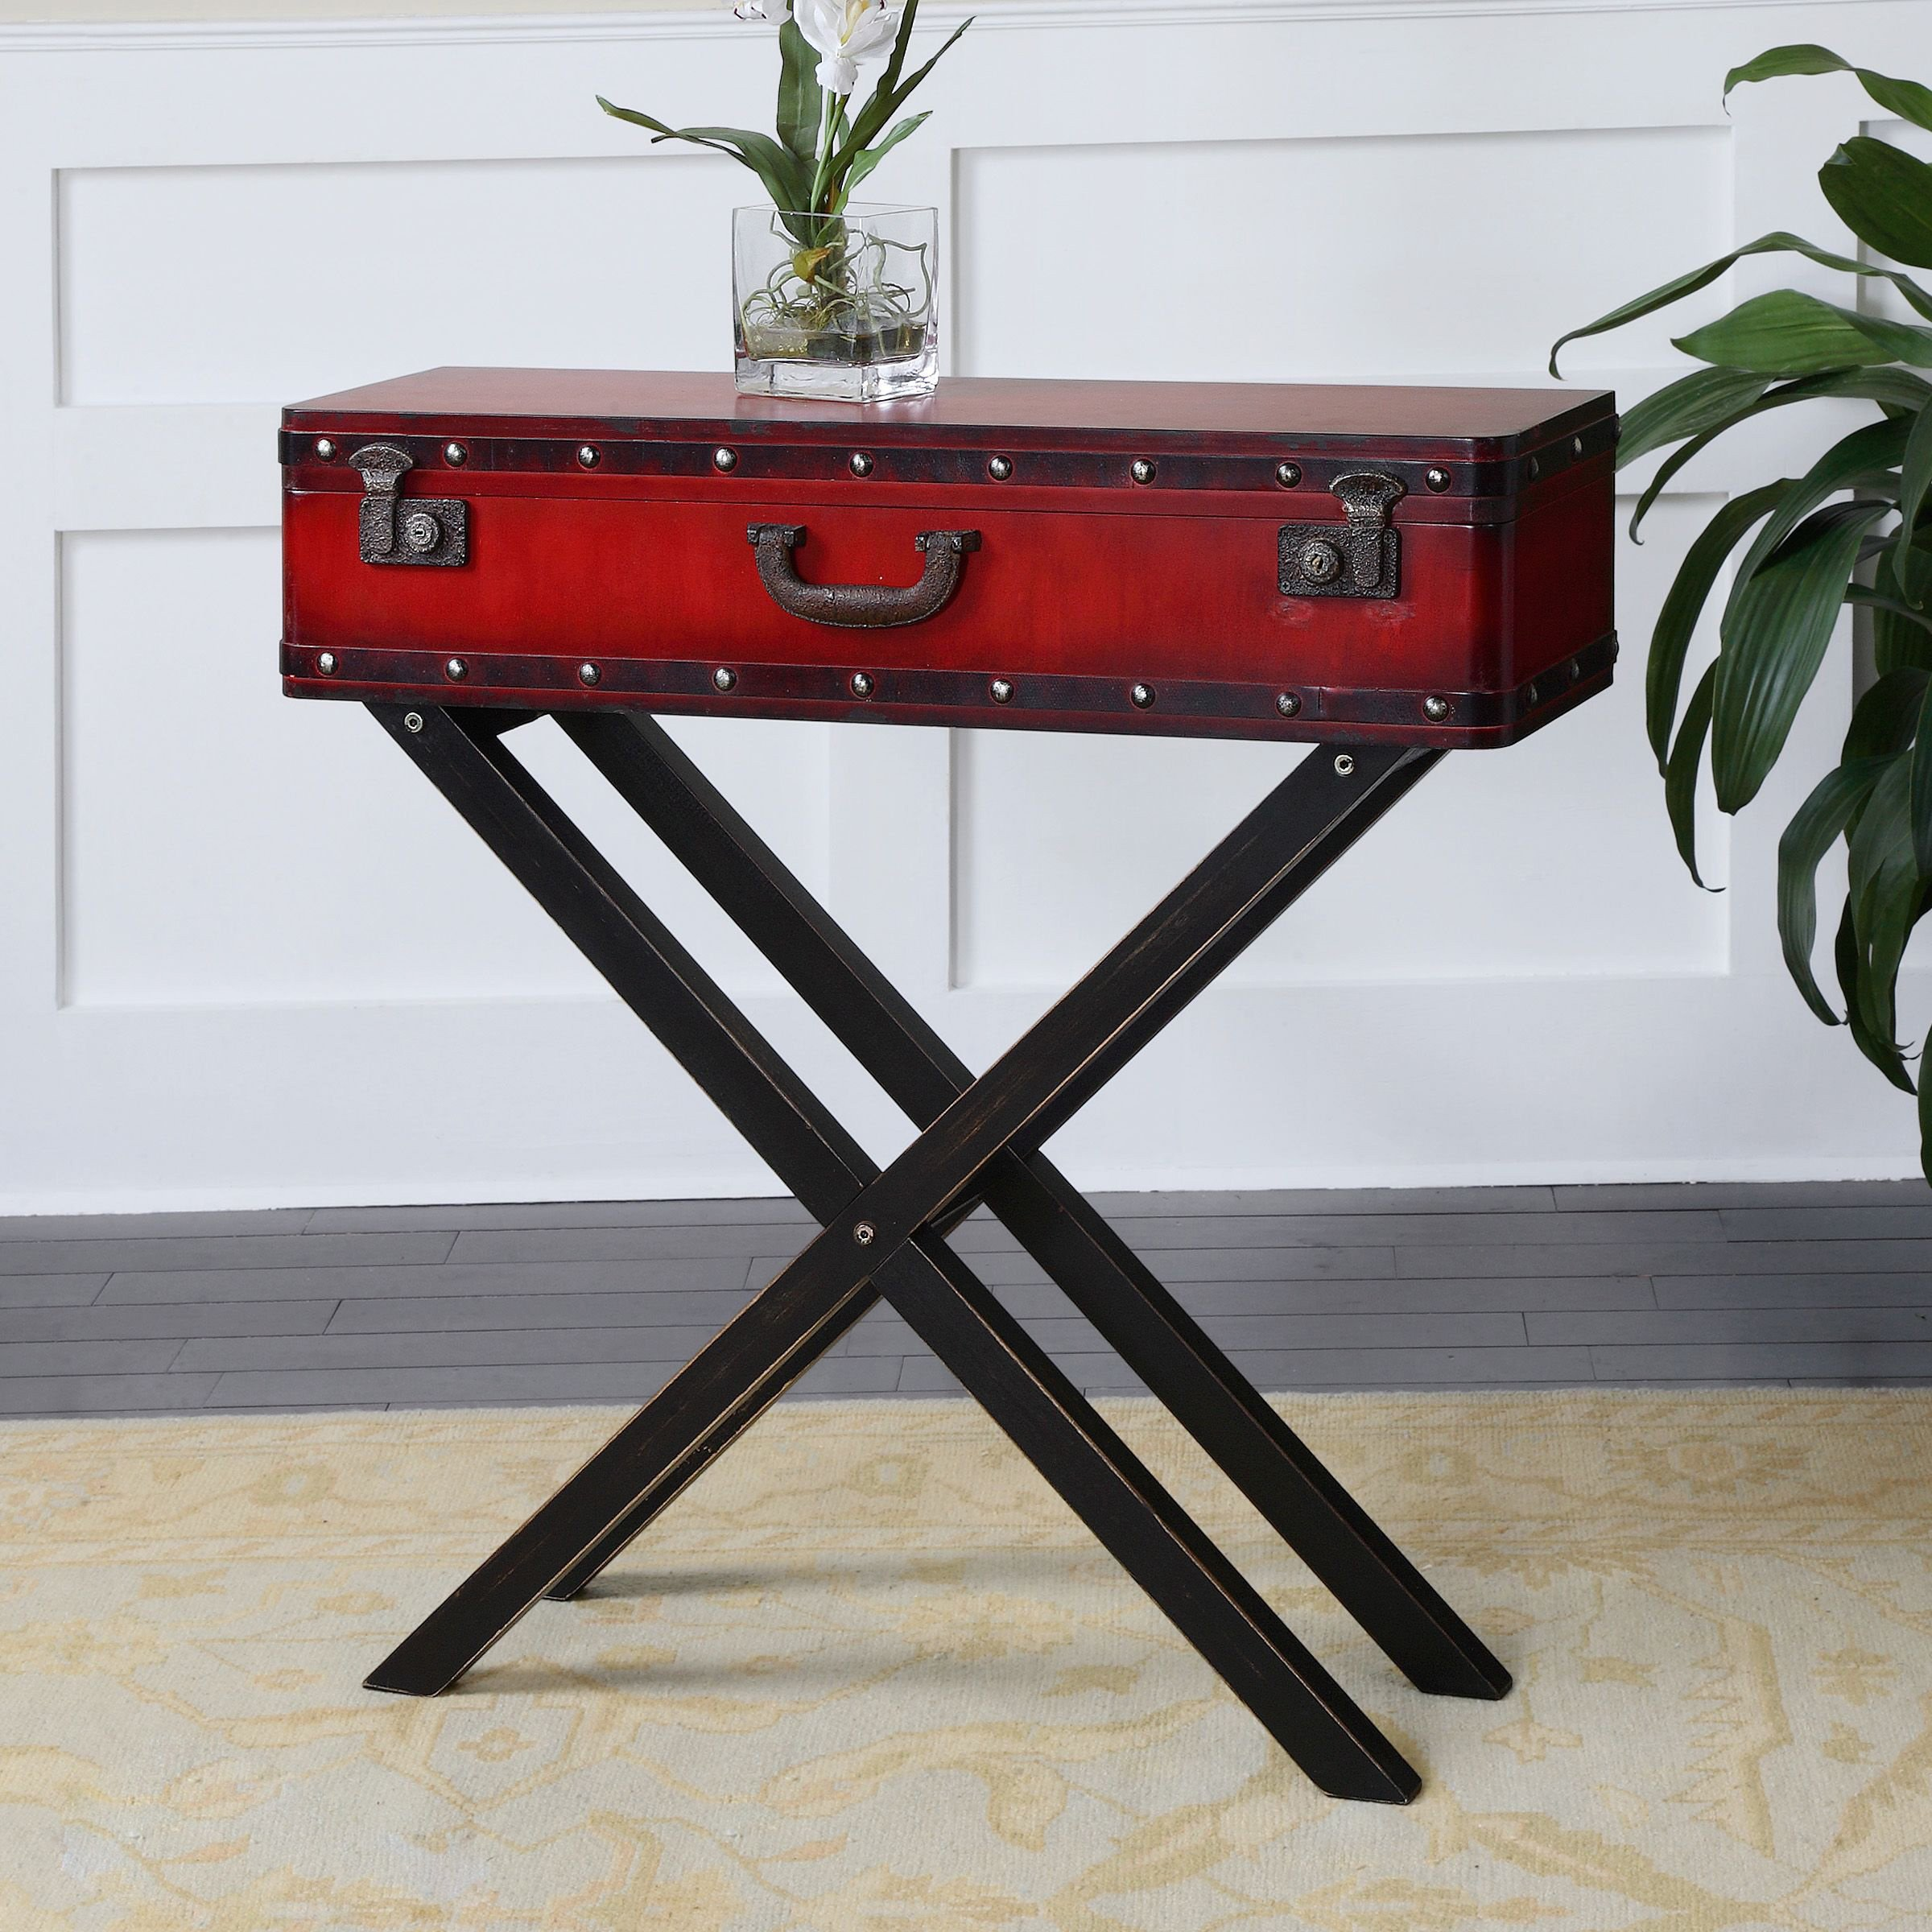 uttermost taggart console table free shipping today dice red accent better homes and gardens crossmill collection leg brackets rustic half moon furniture square plant stand green